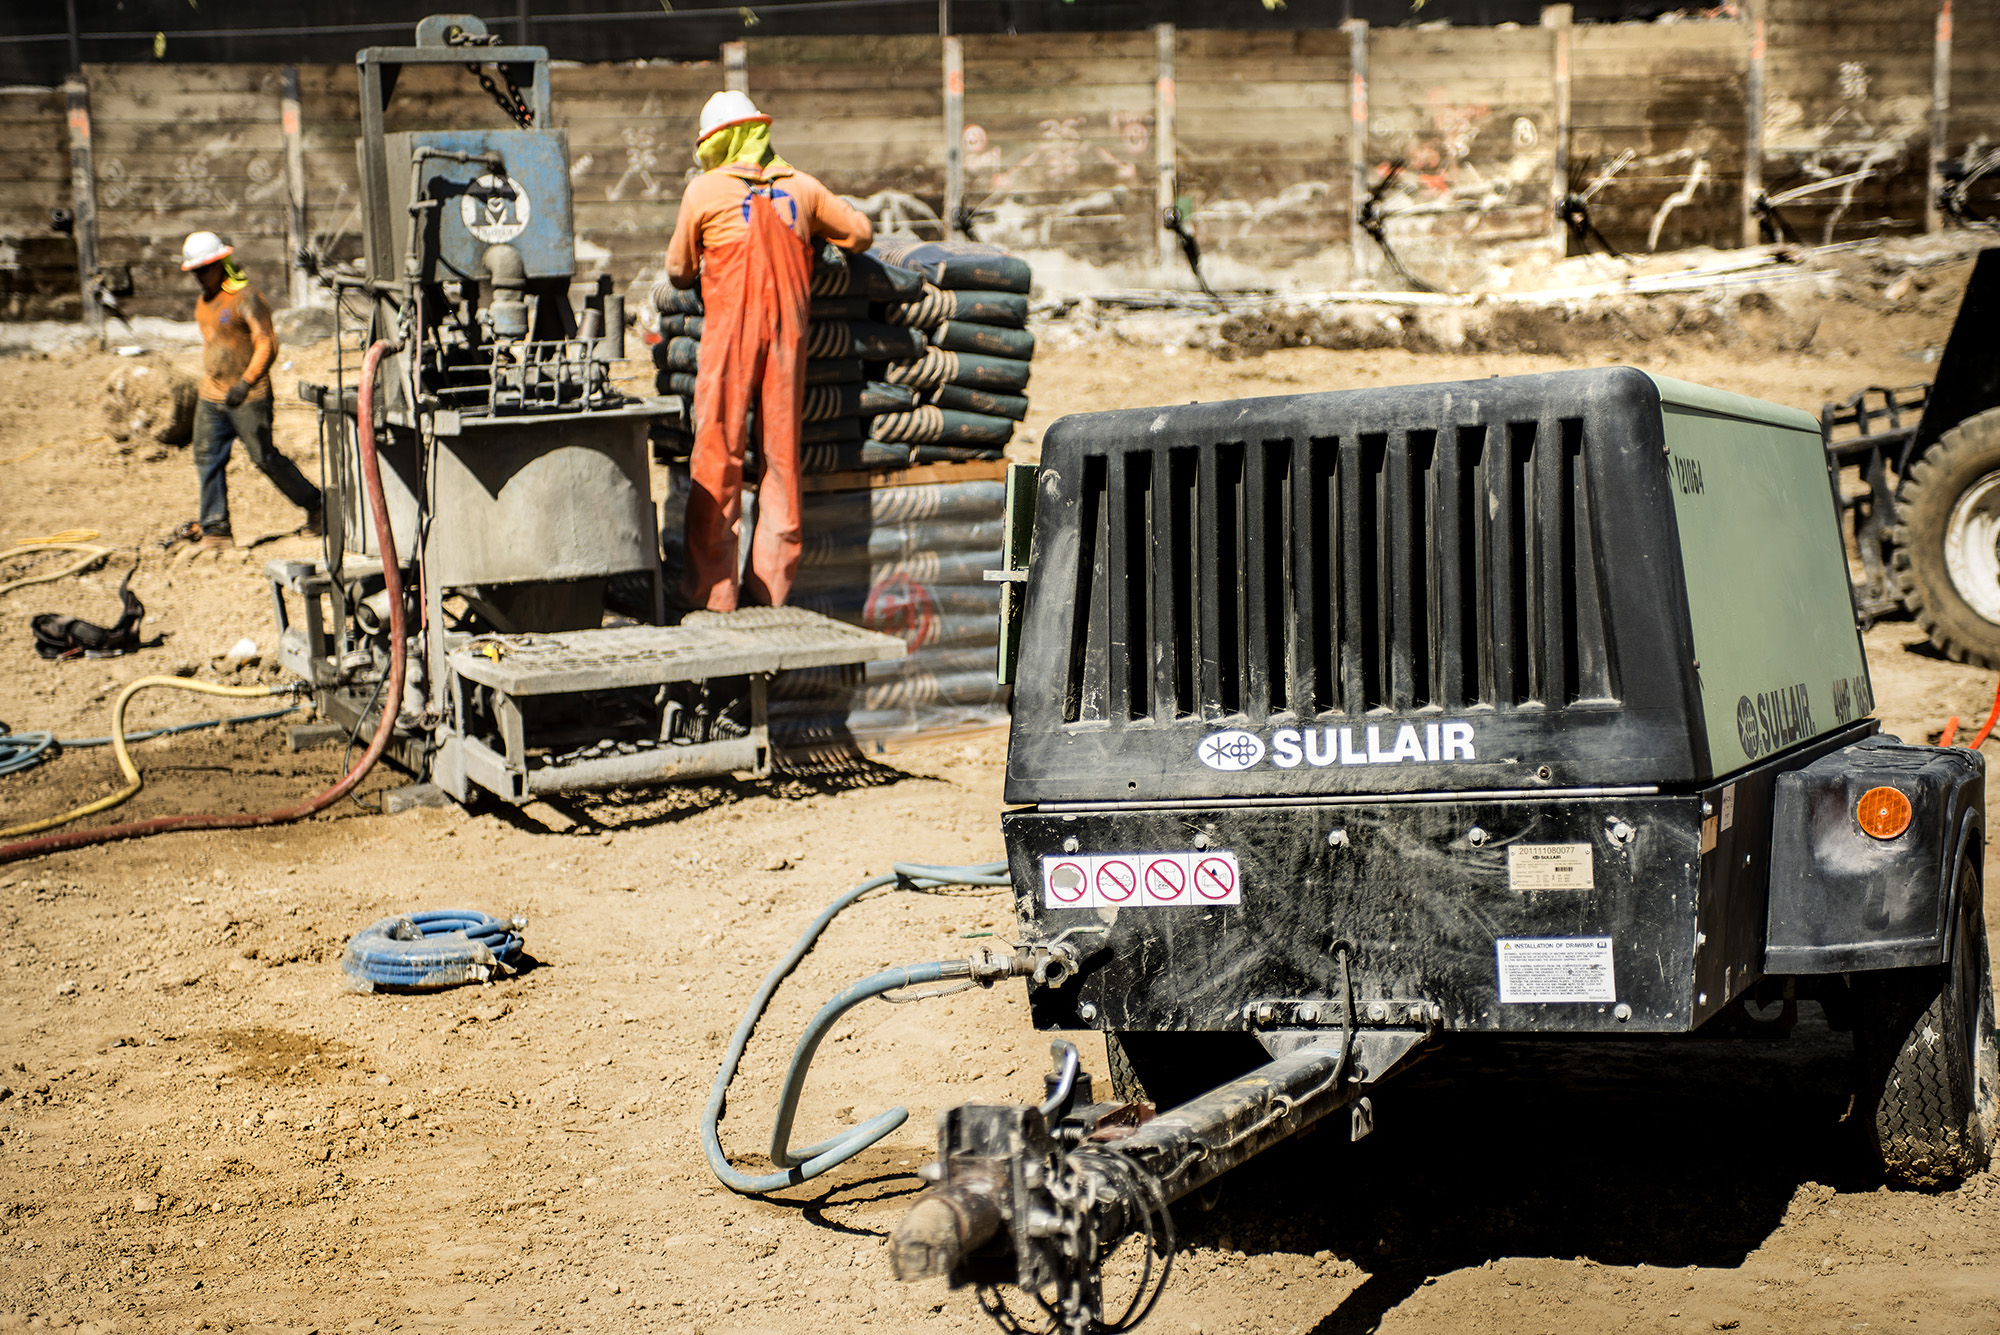 Sullair portable diesel air compressors are designed for rental flexibility